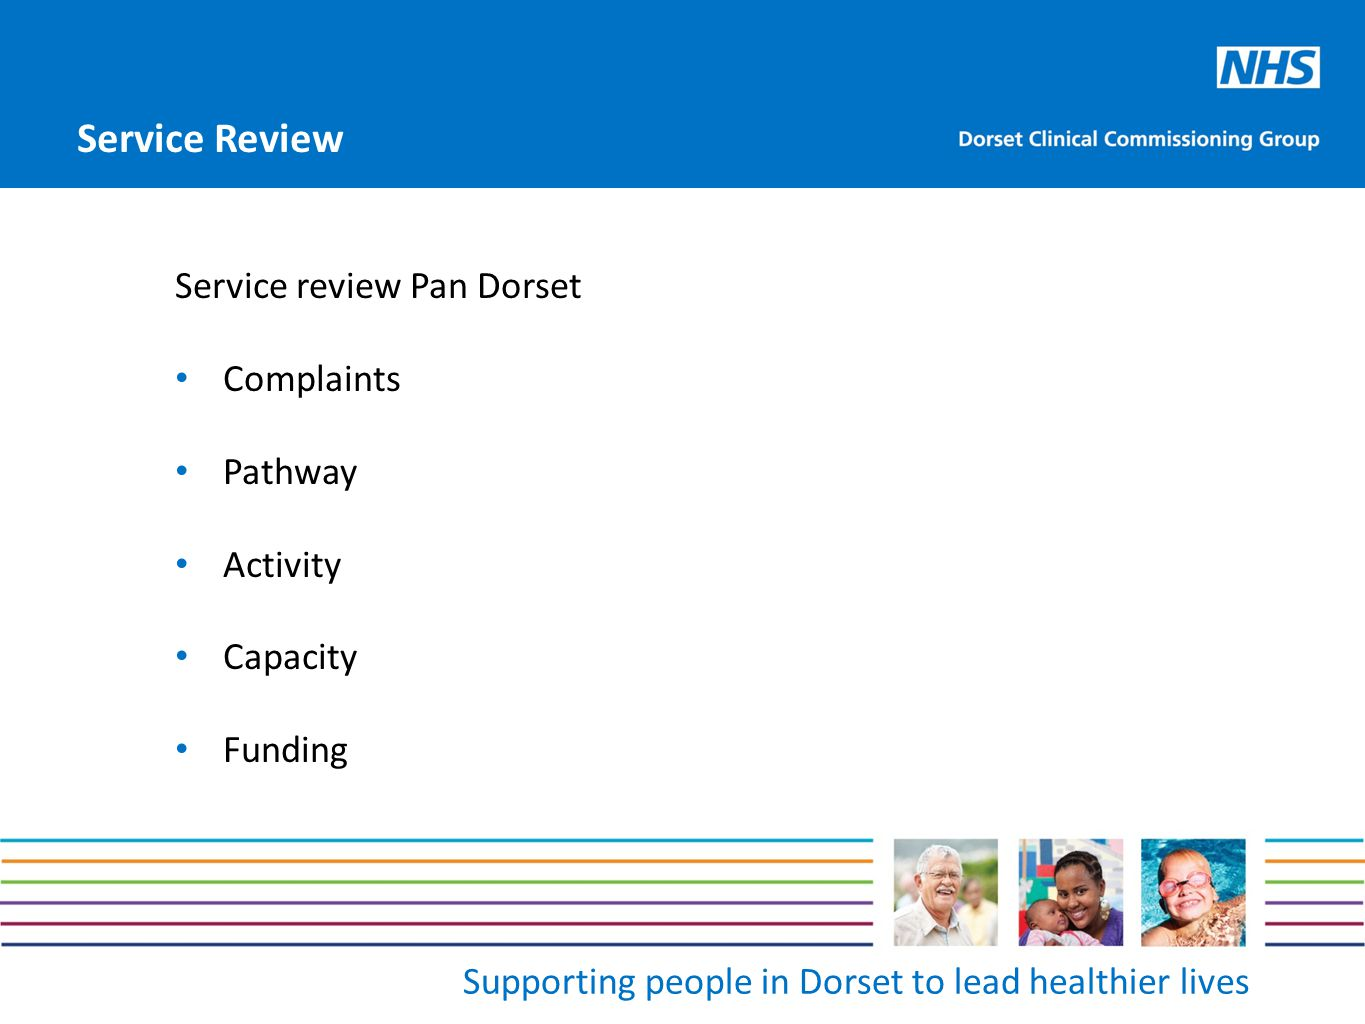 Supporting people in Dorset to lead healthier lives Best practice research Interventional Procedures in the Management of Spinal Pain Policy Multidisciplinary team triage of new patient referrals Post injection patient diary Increased funding for backlog patients on to new pathway Service Redesign